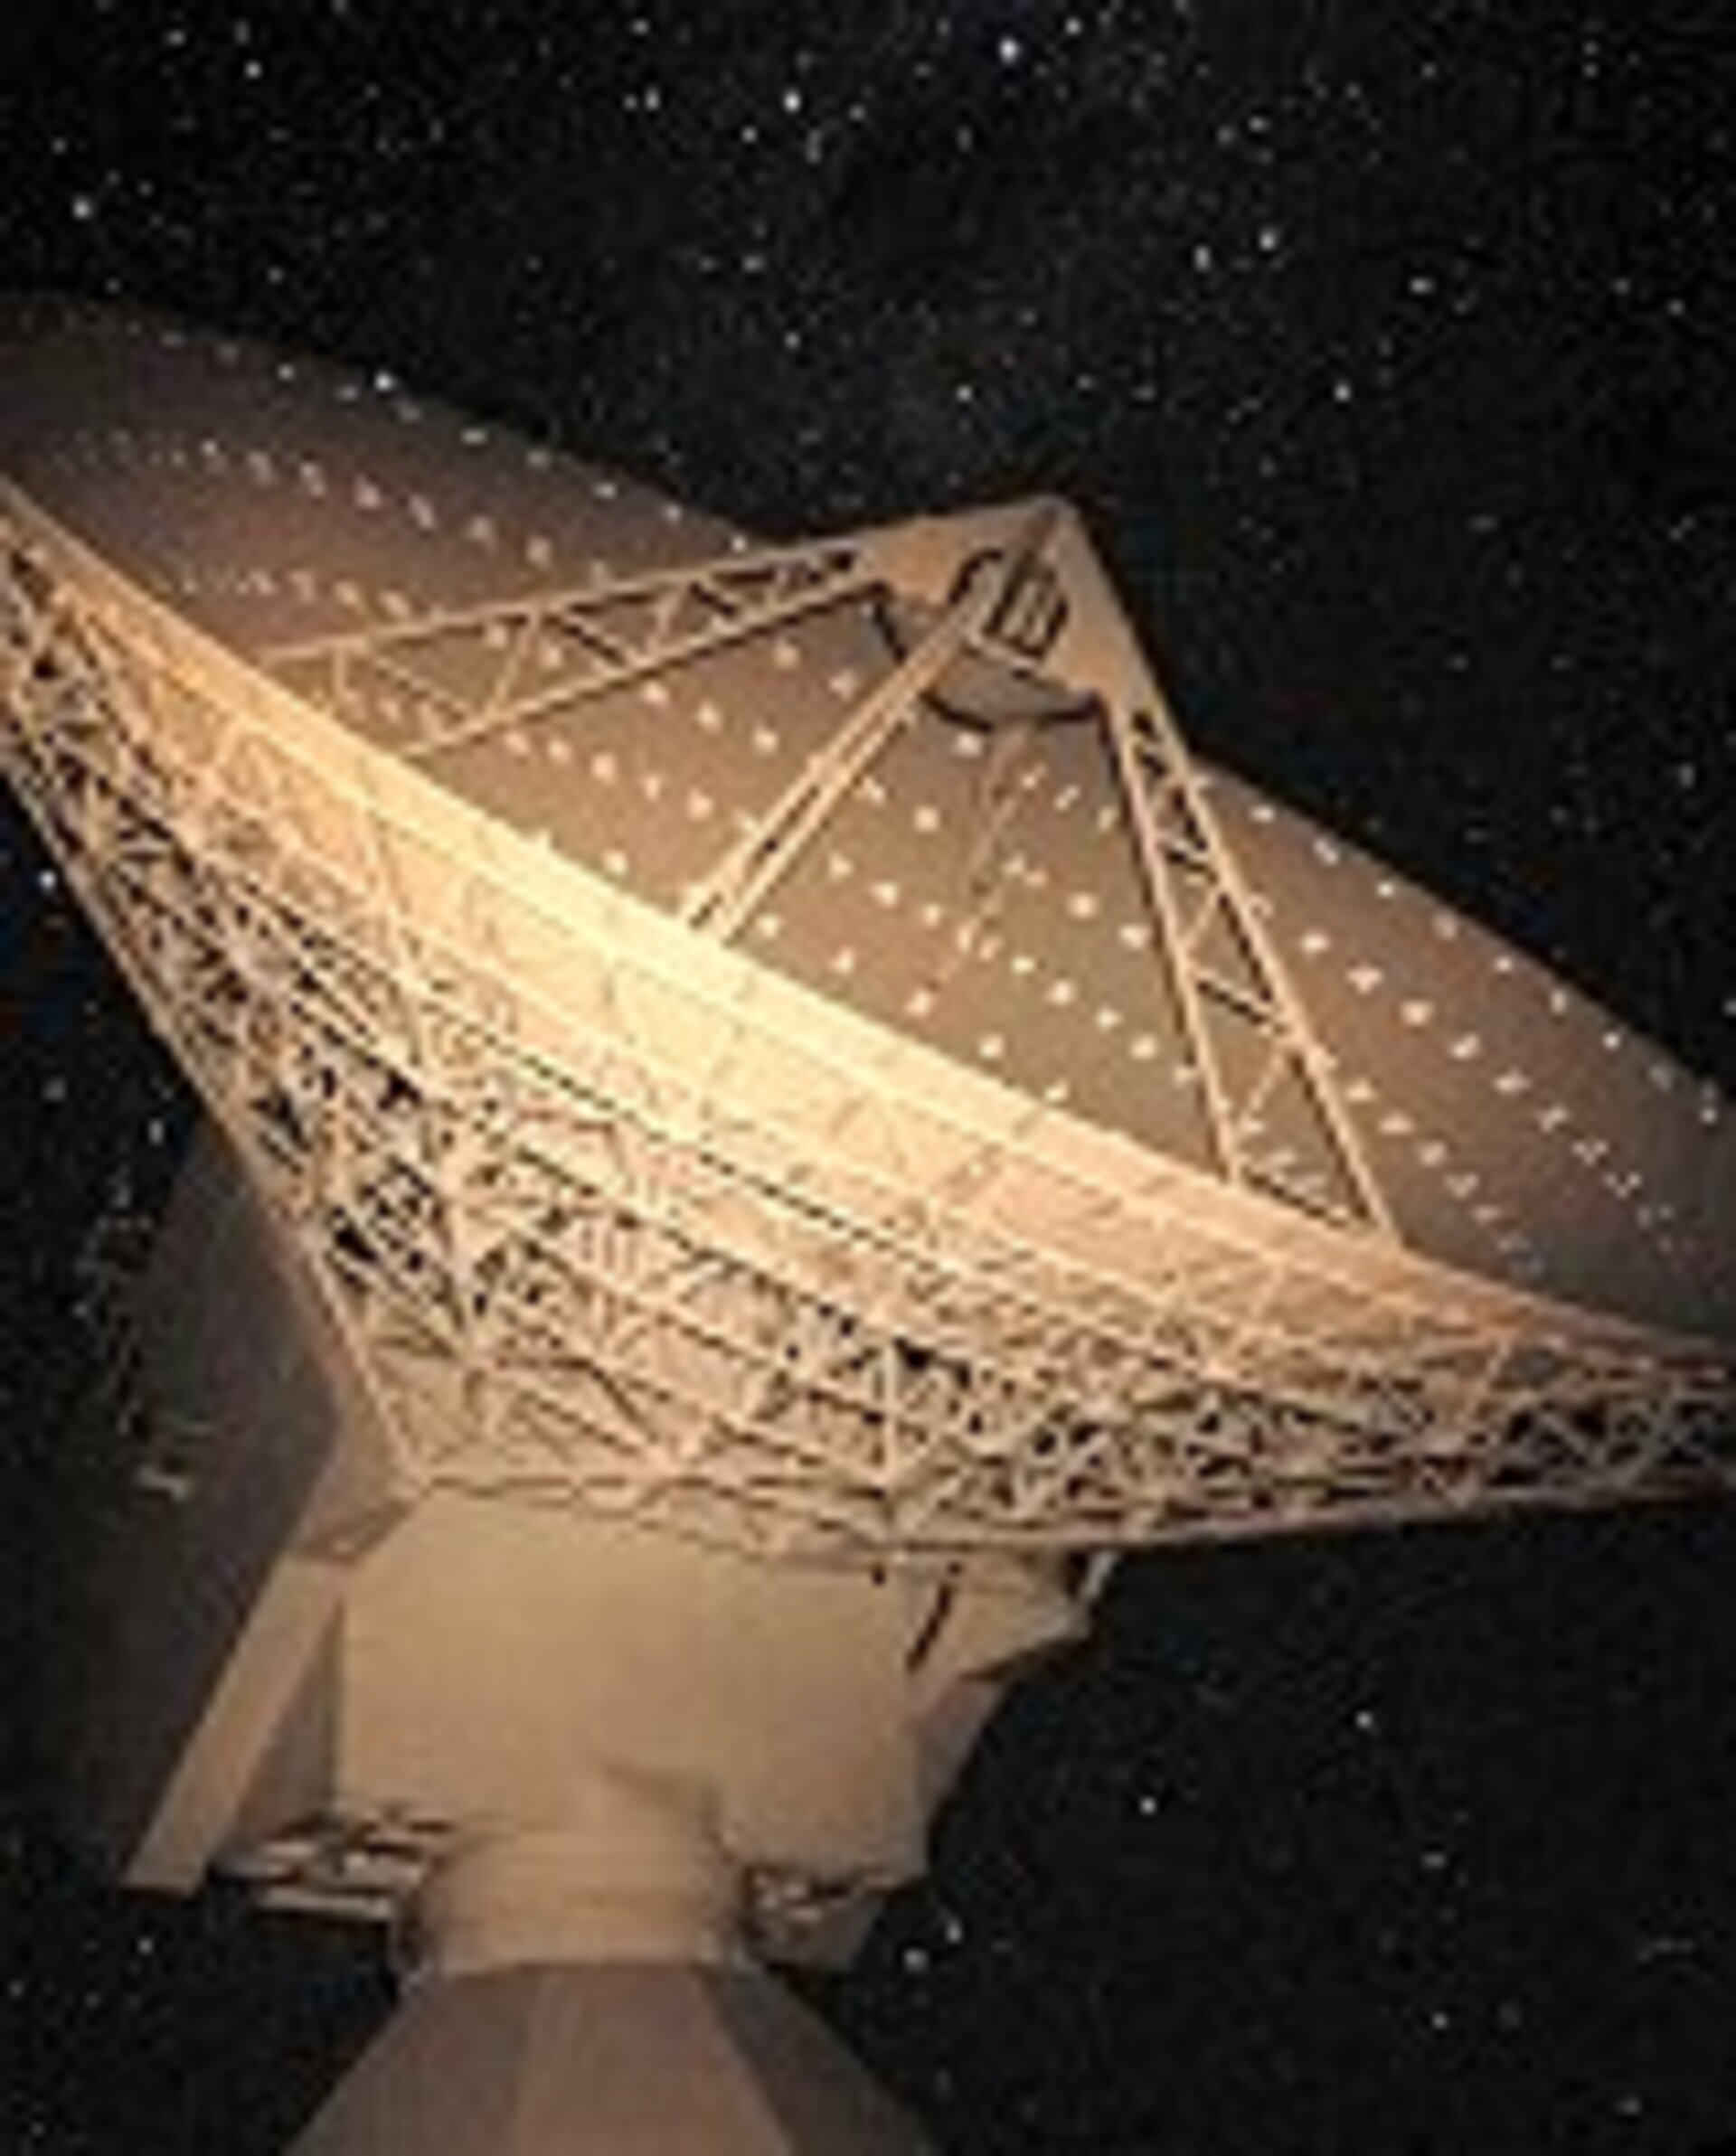 ESTRACK New Norcia 35m deep space antenna: tracking Rosetta to detect unknown speed anomaly